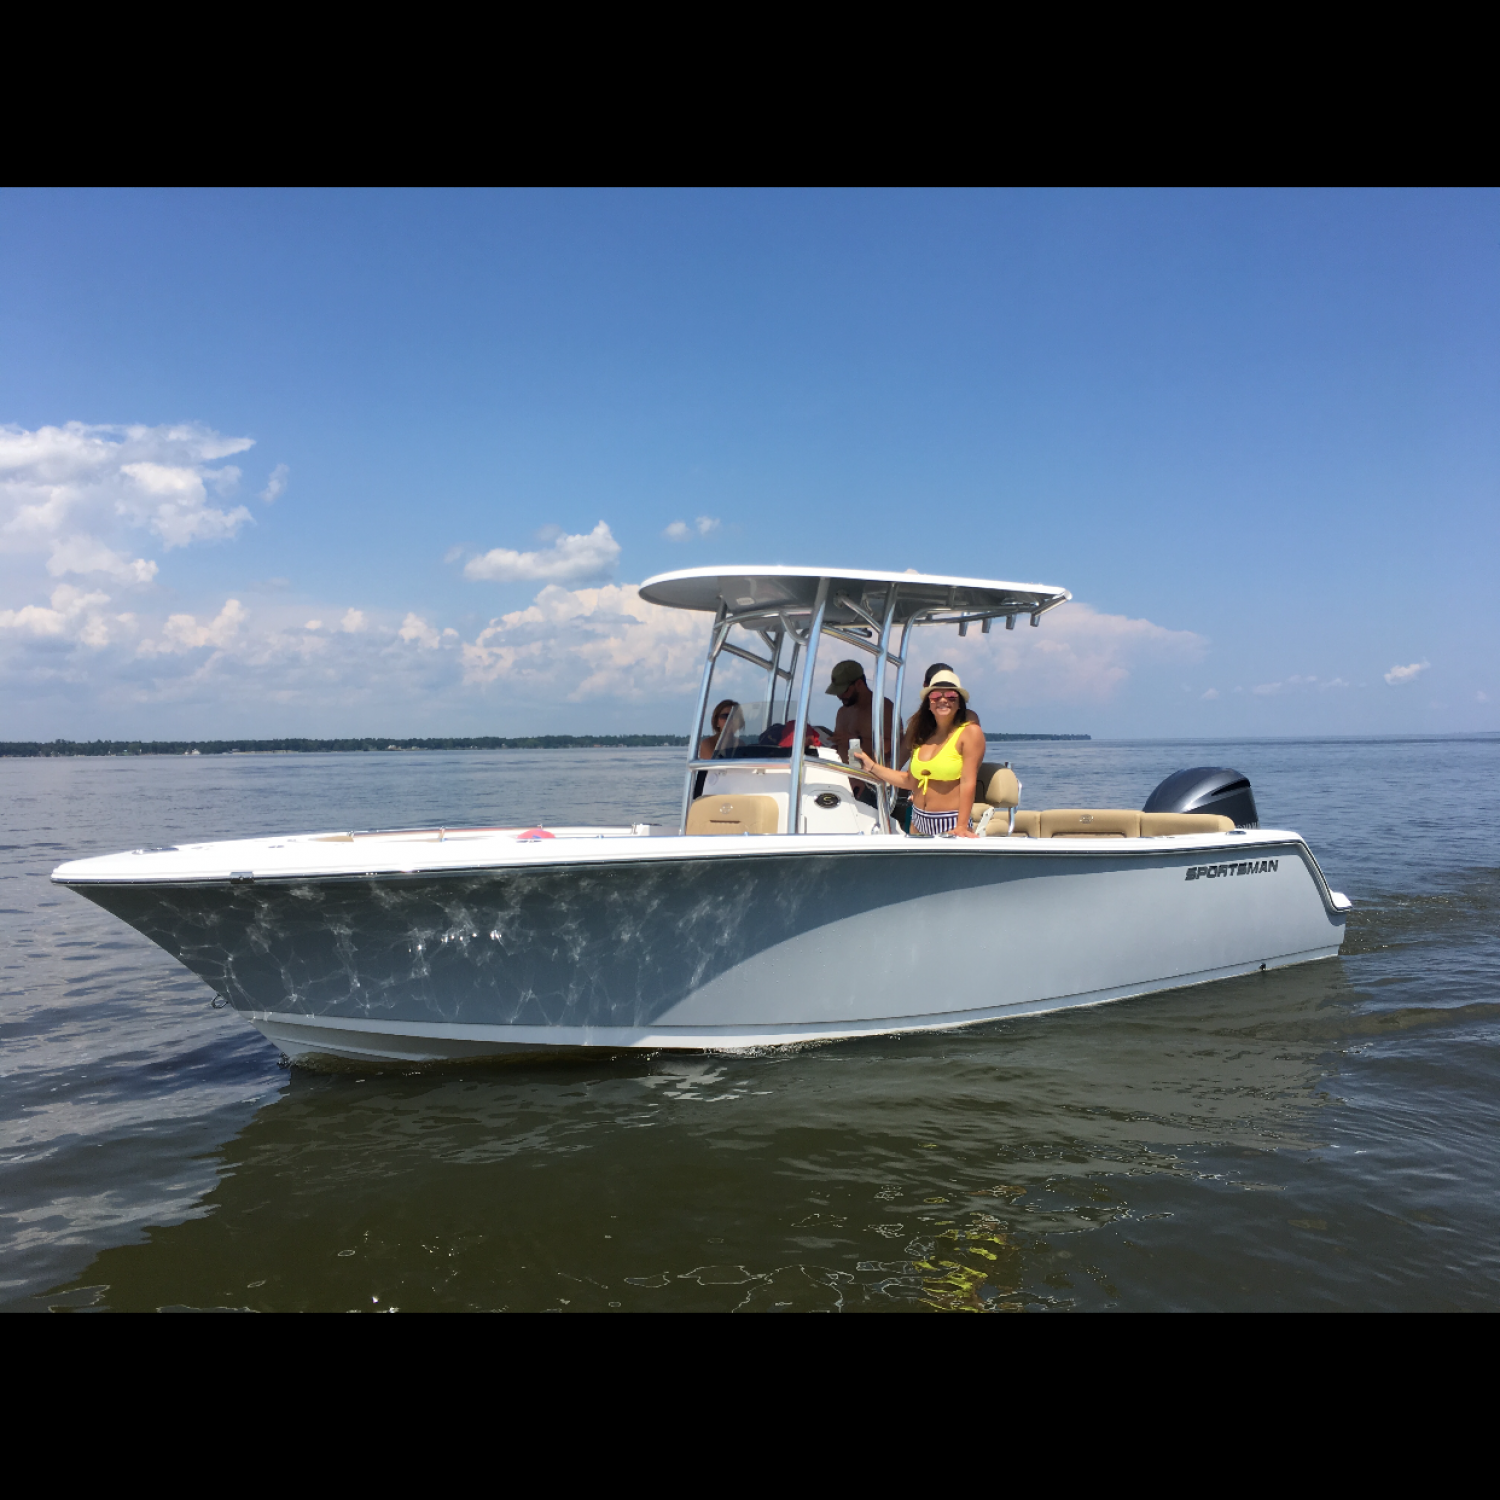 Title: 2018 231 heritage sport - On board their Sportsman Heritage 231 Center Console - Location: Lake Marion, SC. Participating in the Photo Contest #SportsmanSeptember2018